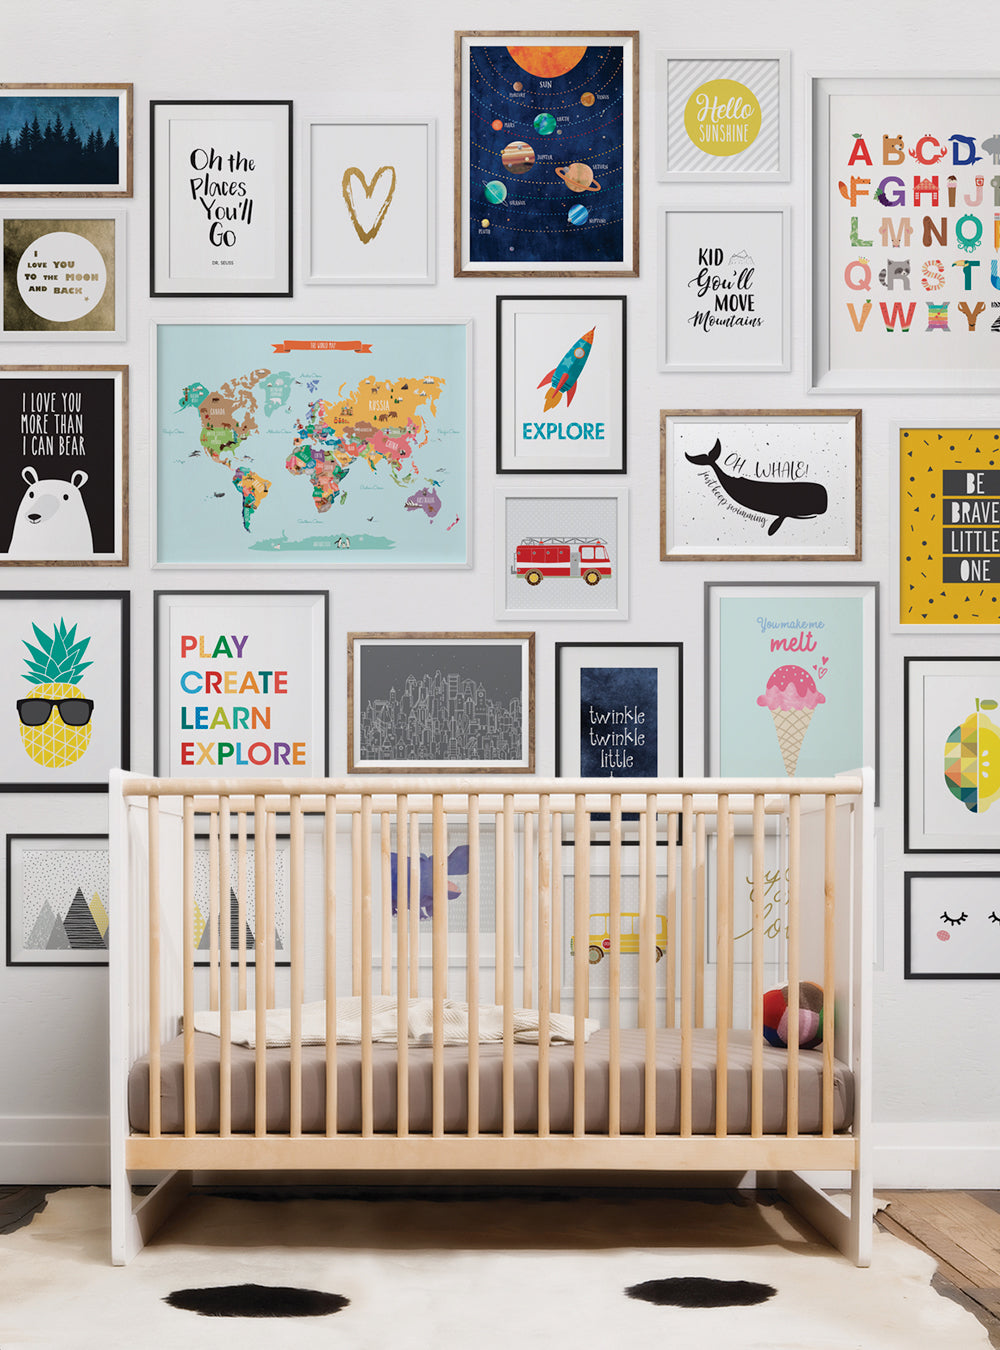 Kids Frames Mural Wall Art Wallpaper - Peel and Stick